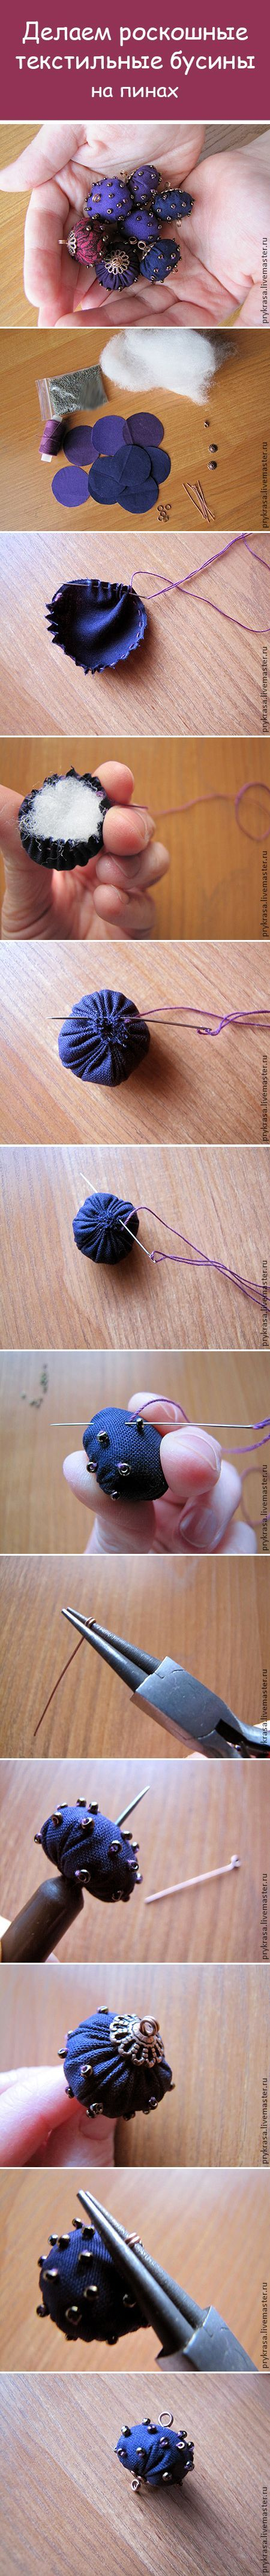 "How to make textile beads ""#beads #masterclass #textile"